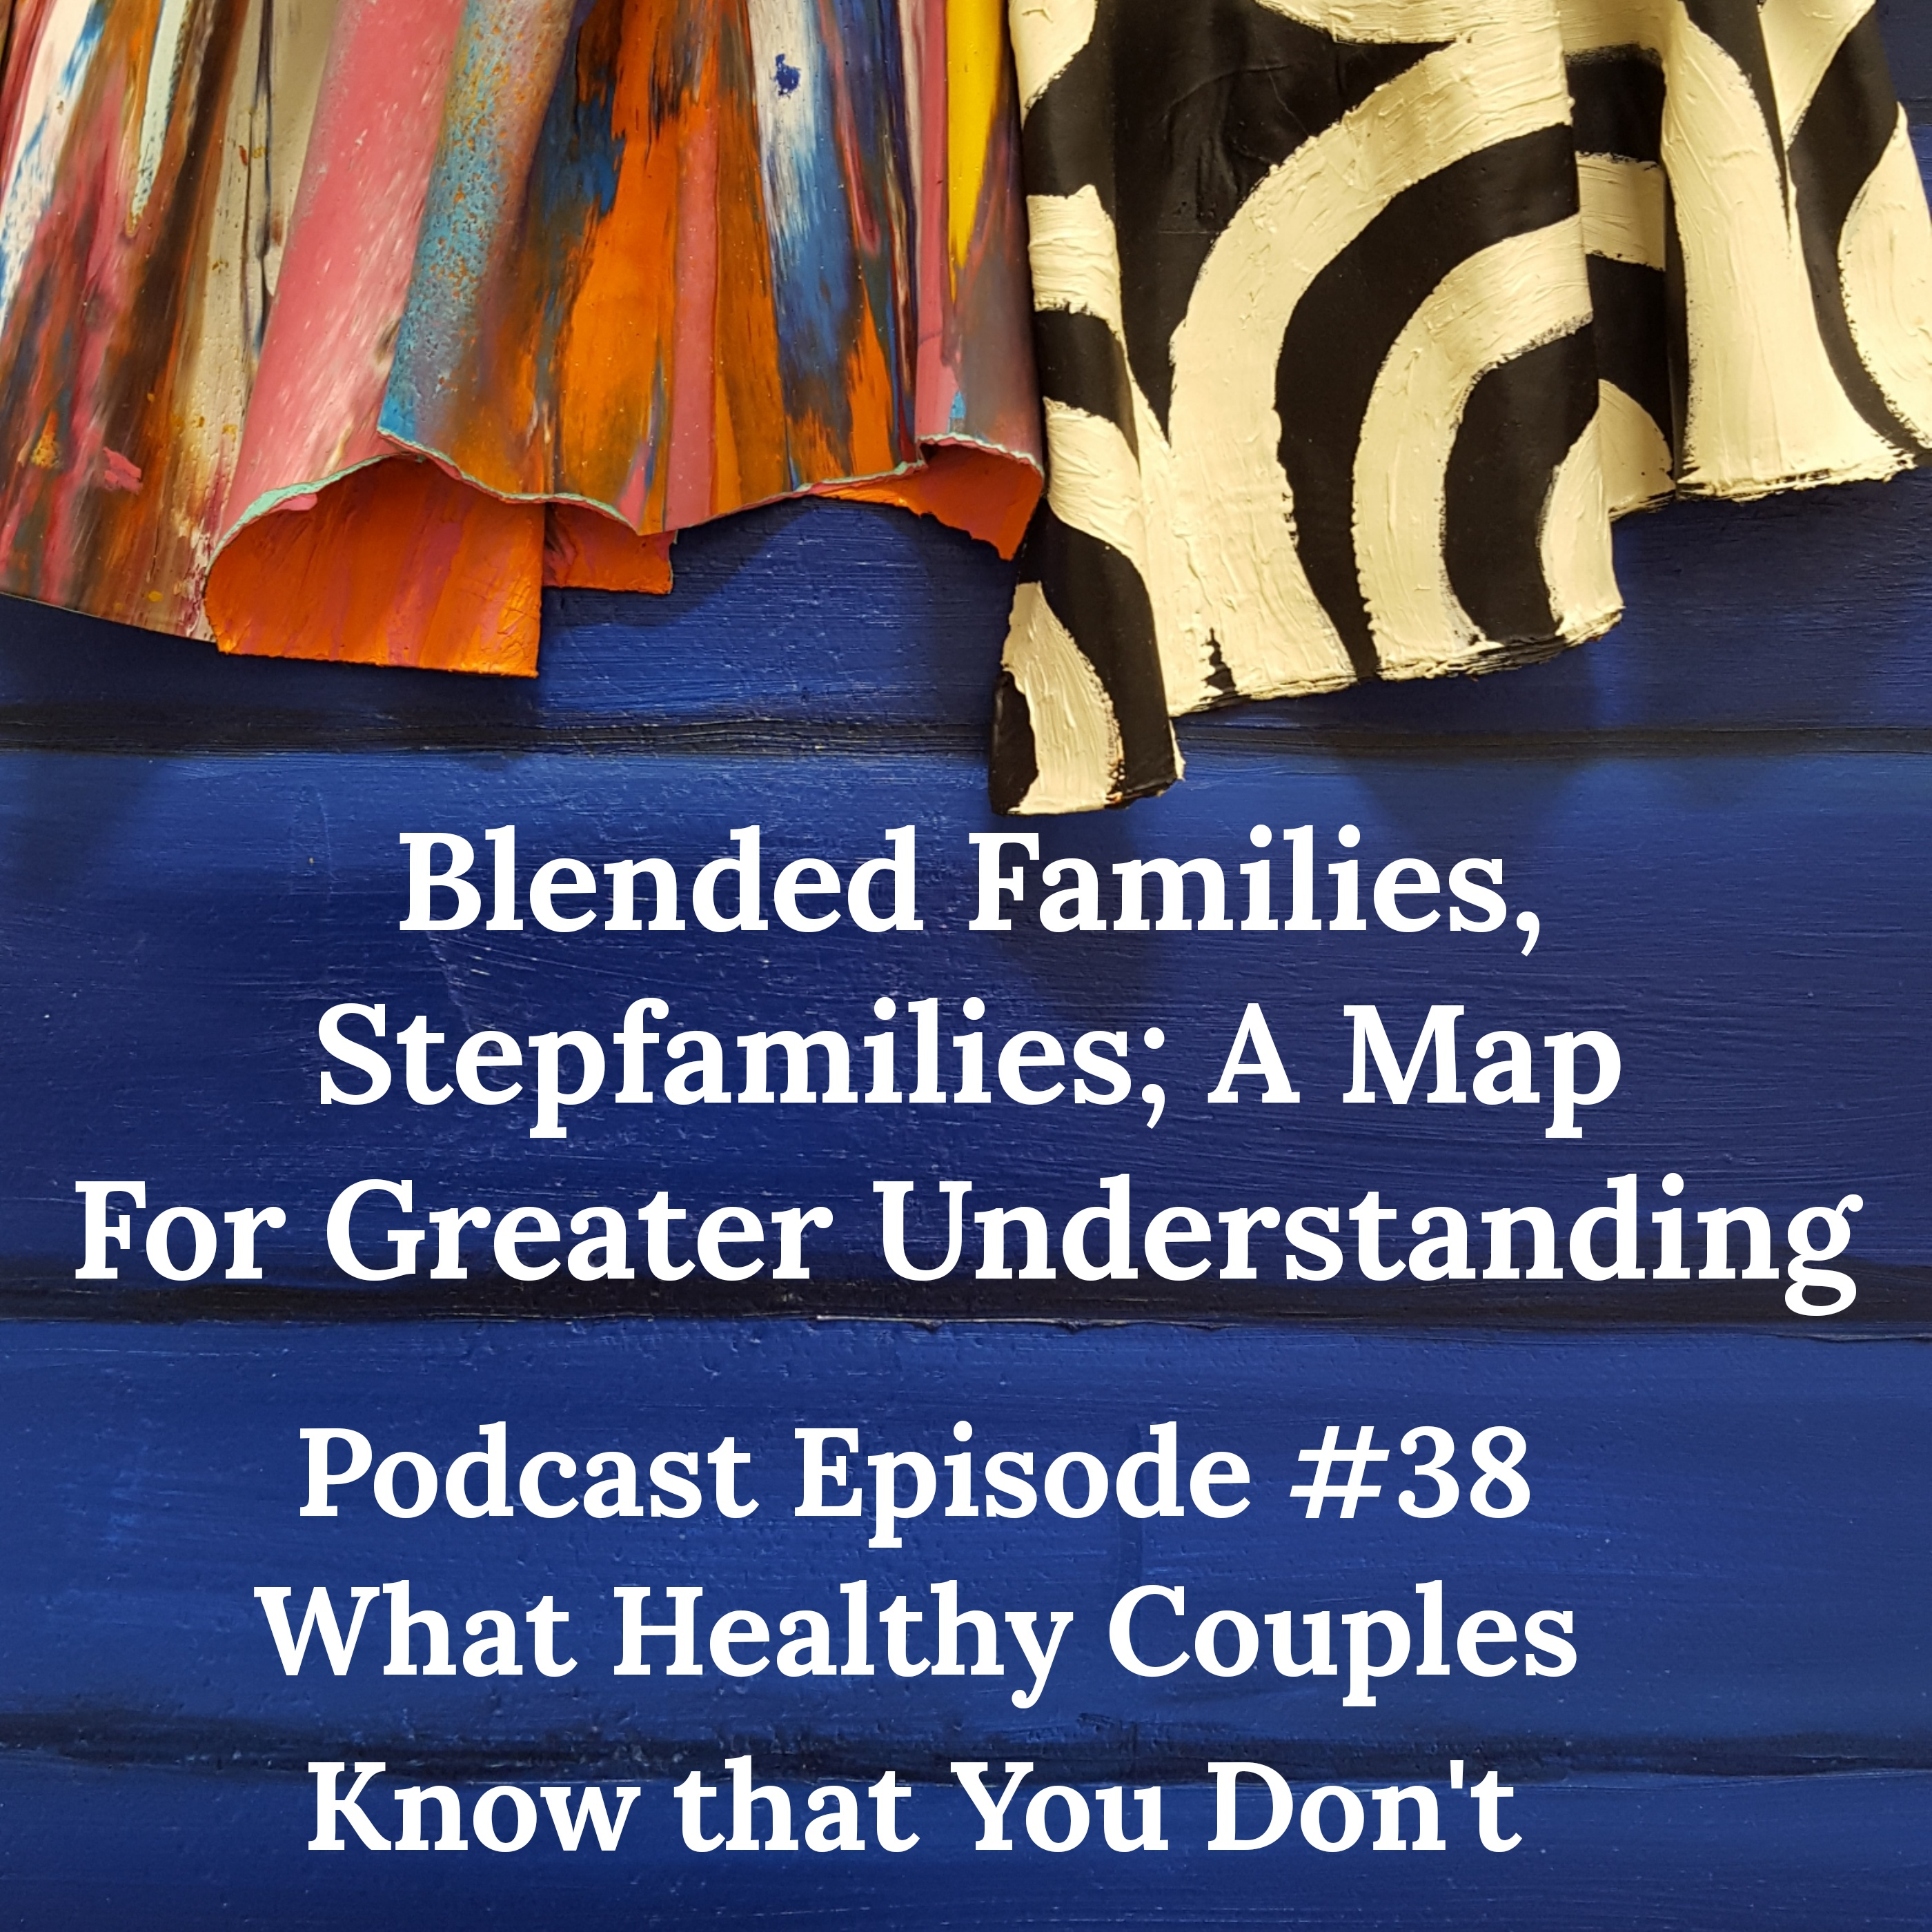 What Healthy Couples Know That You Don't - Blended Families, Stepfamilies; A Map for Greater Understanding